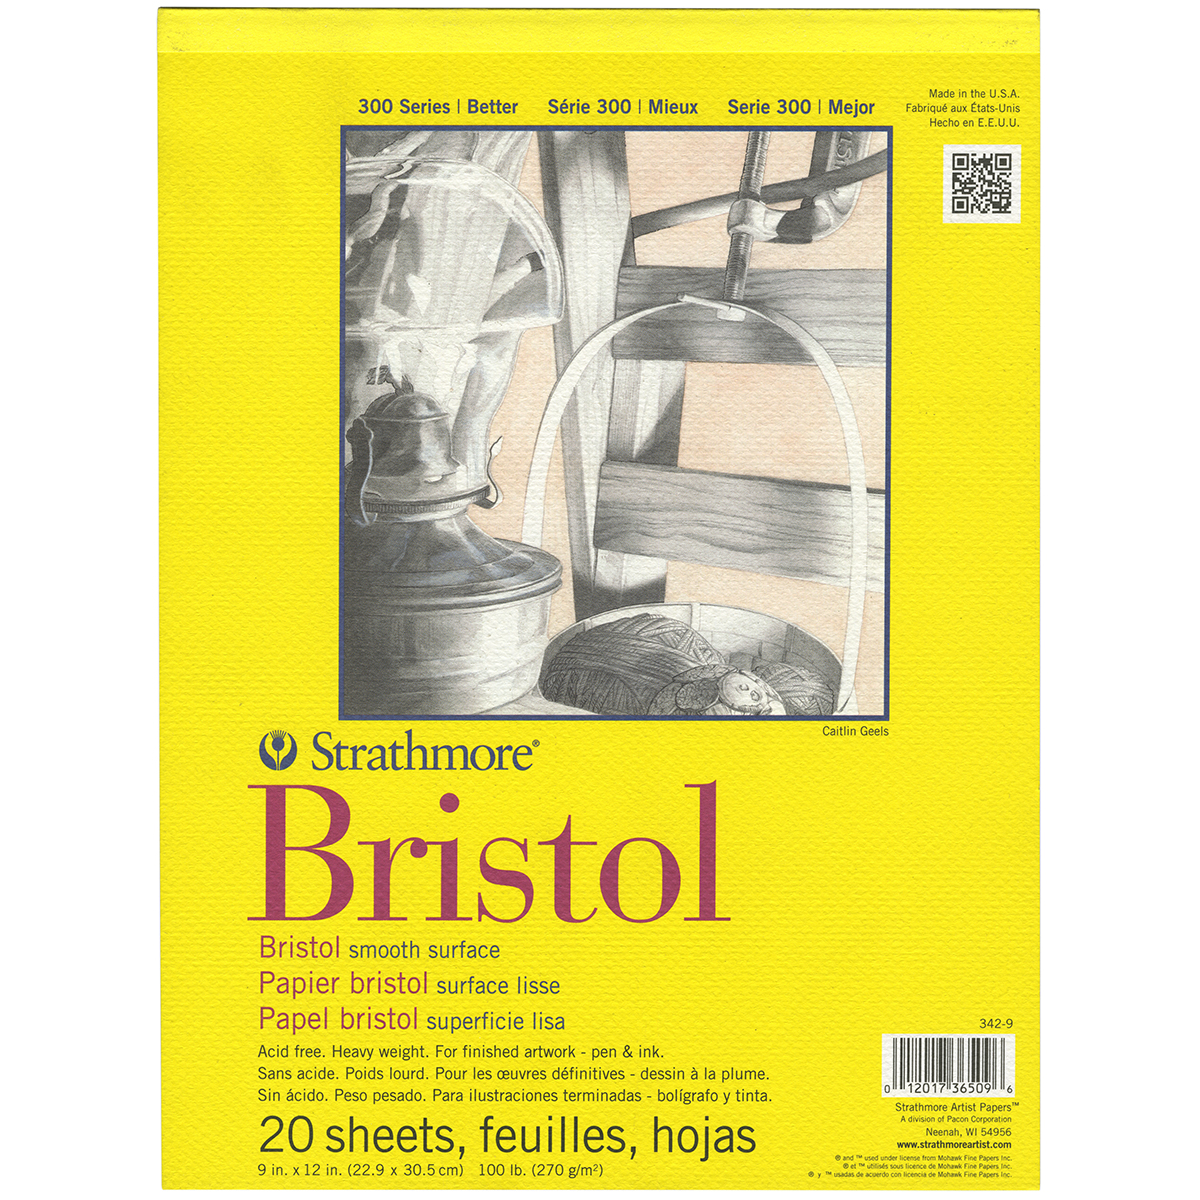 Bristol 20 sheets Strathmore 9in x 12in